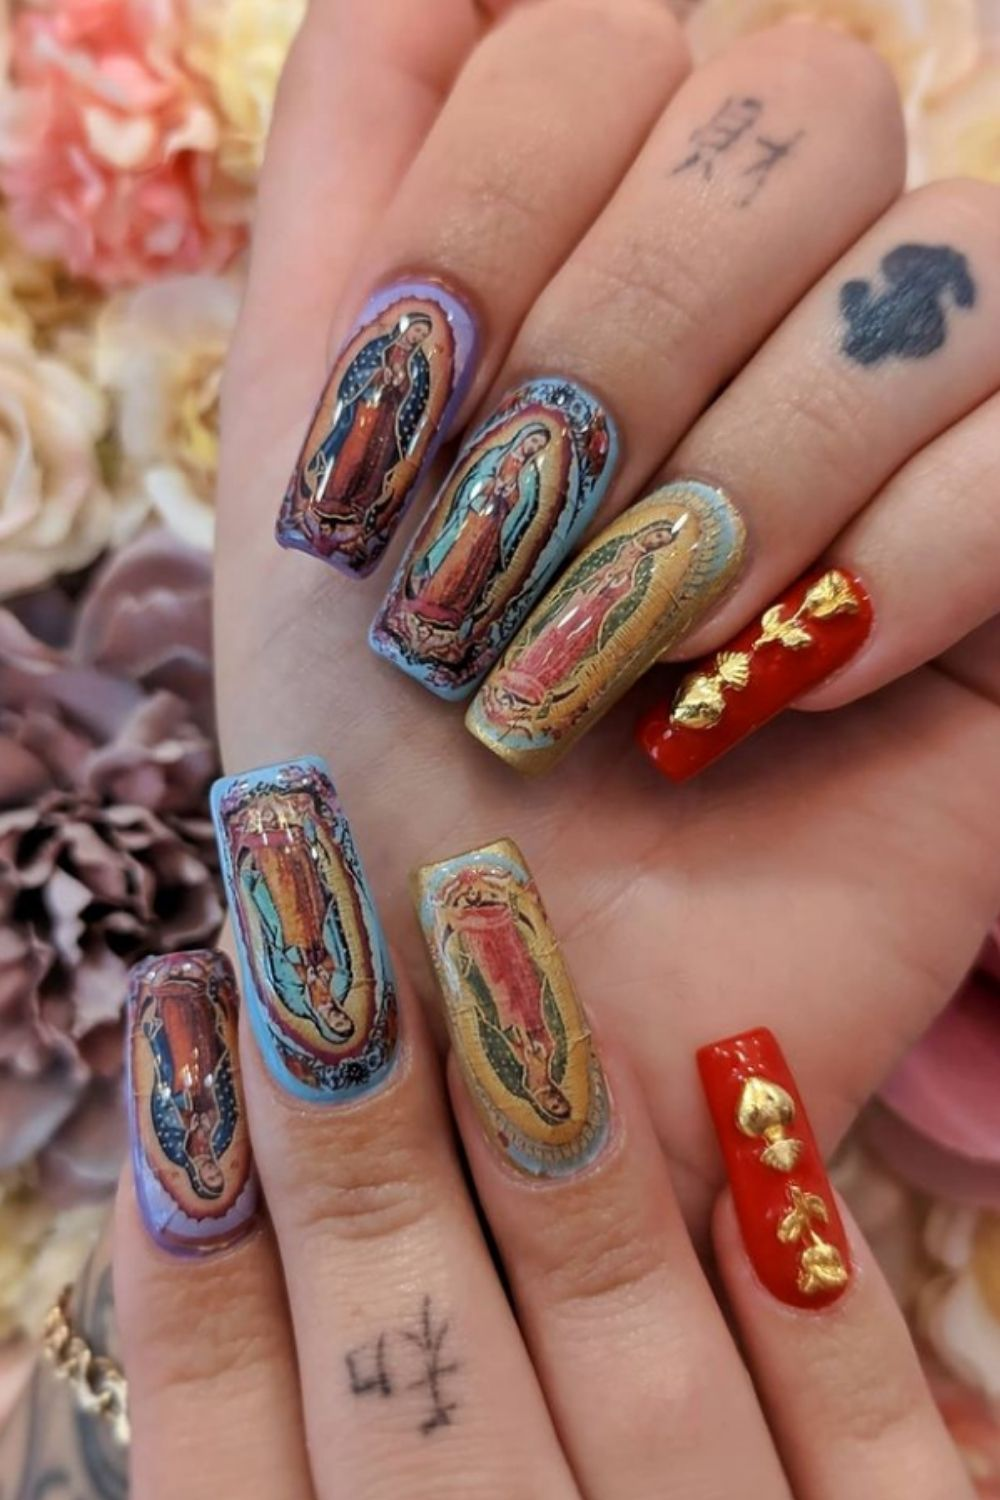 Ballerina acrylic nails | the ultimate guide nail ideas for your next manicure